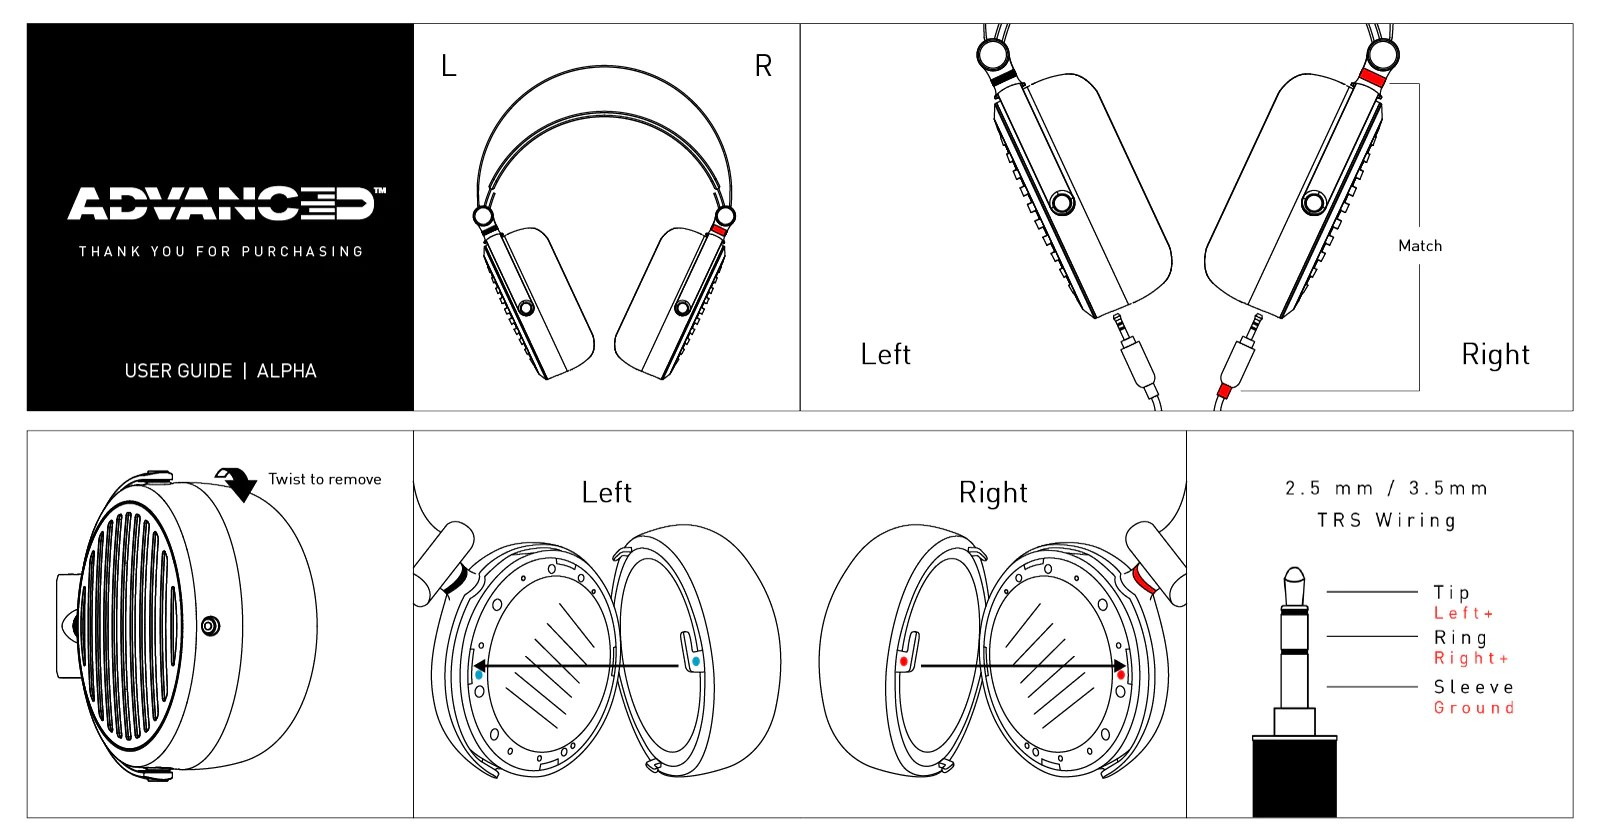 small resolution of advanced alpha planar magnetic headphoens user guide